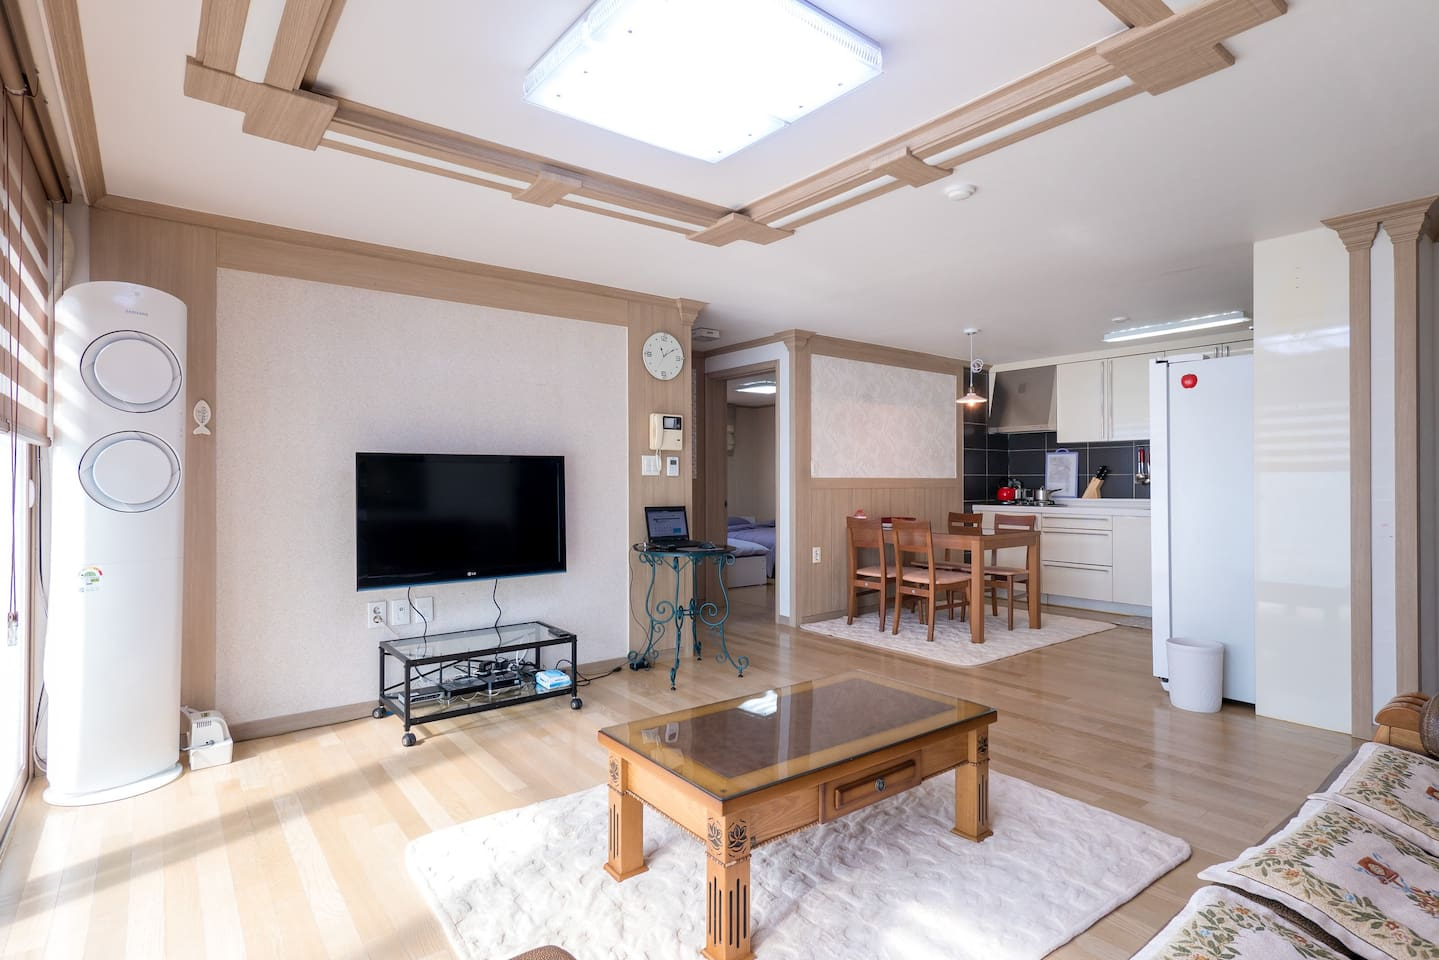 Spacious, clean living room and kitchen (air conditioning in the living room)